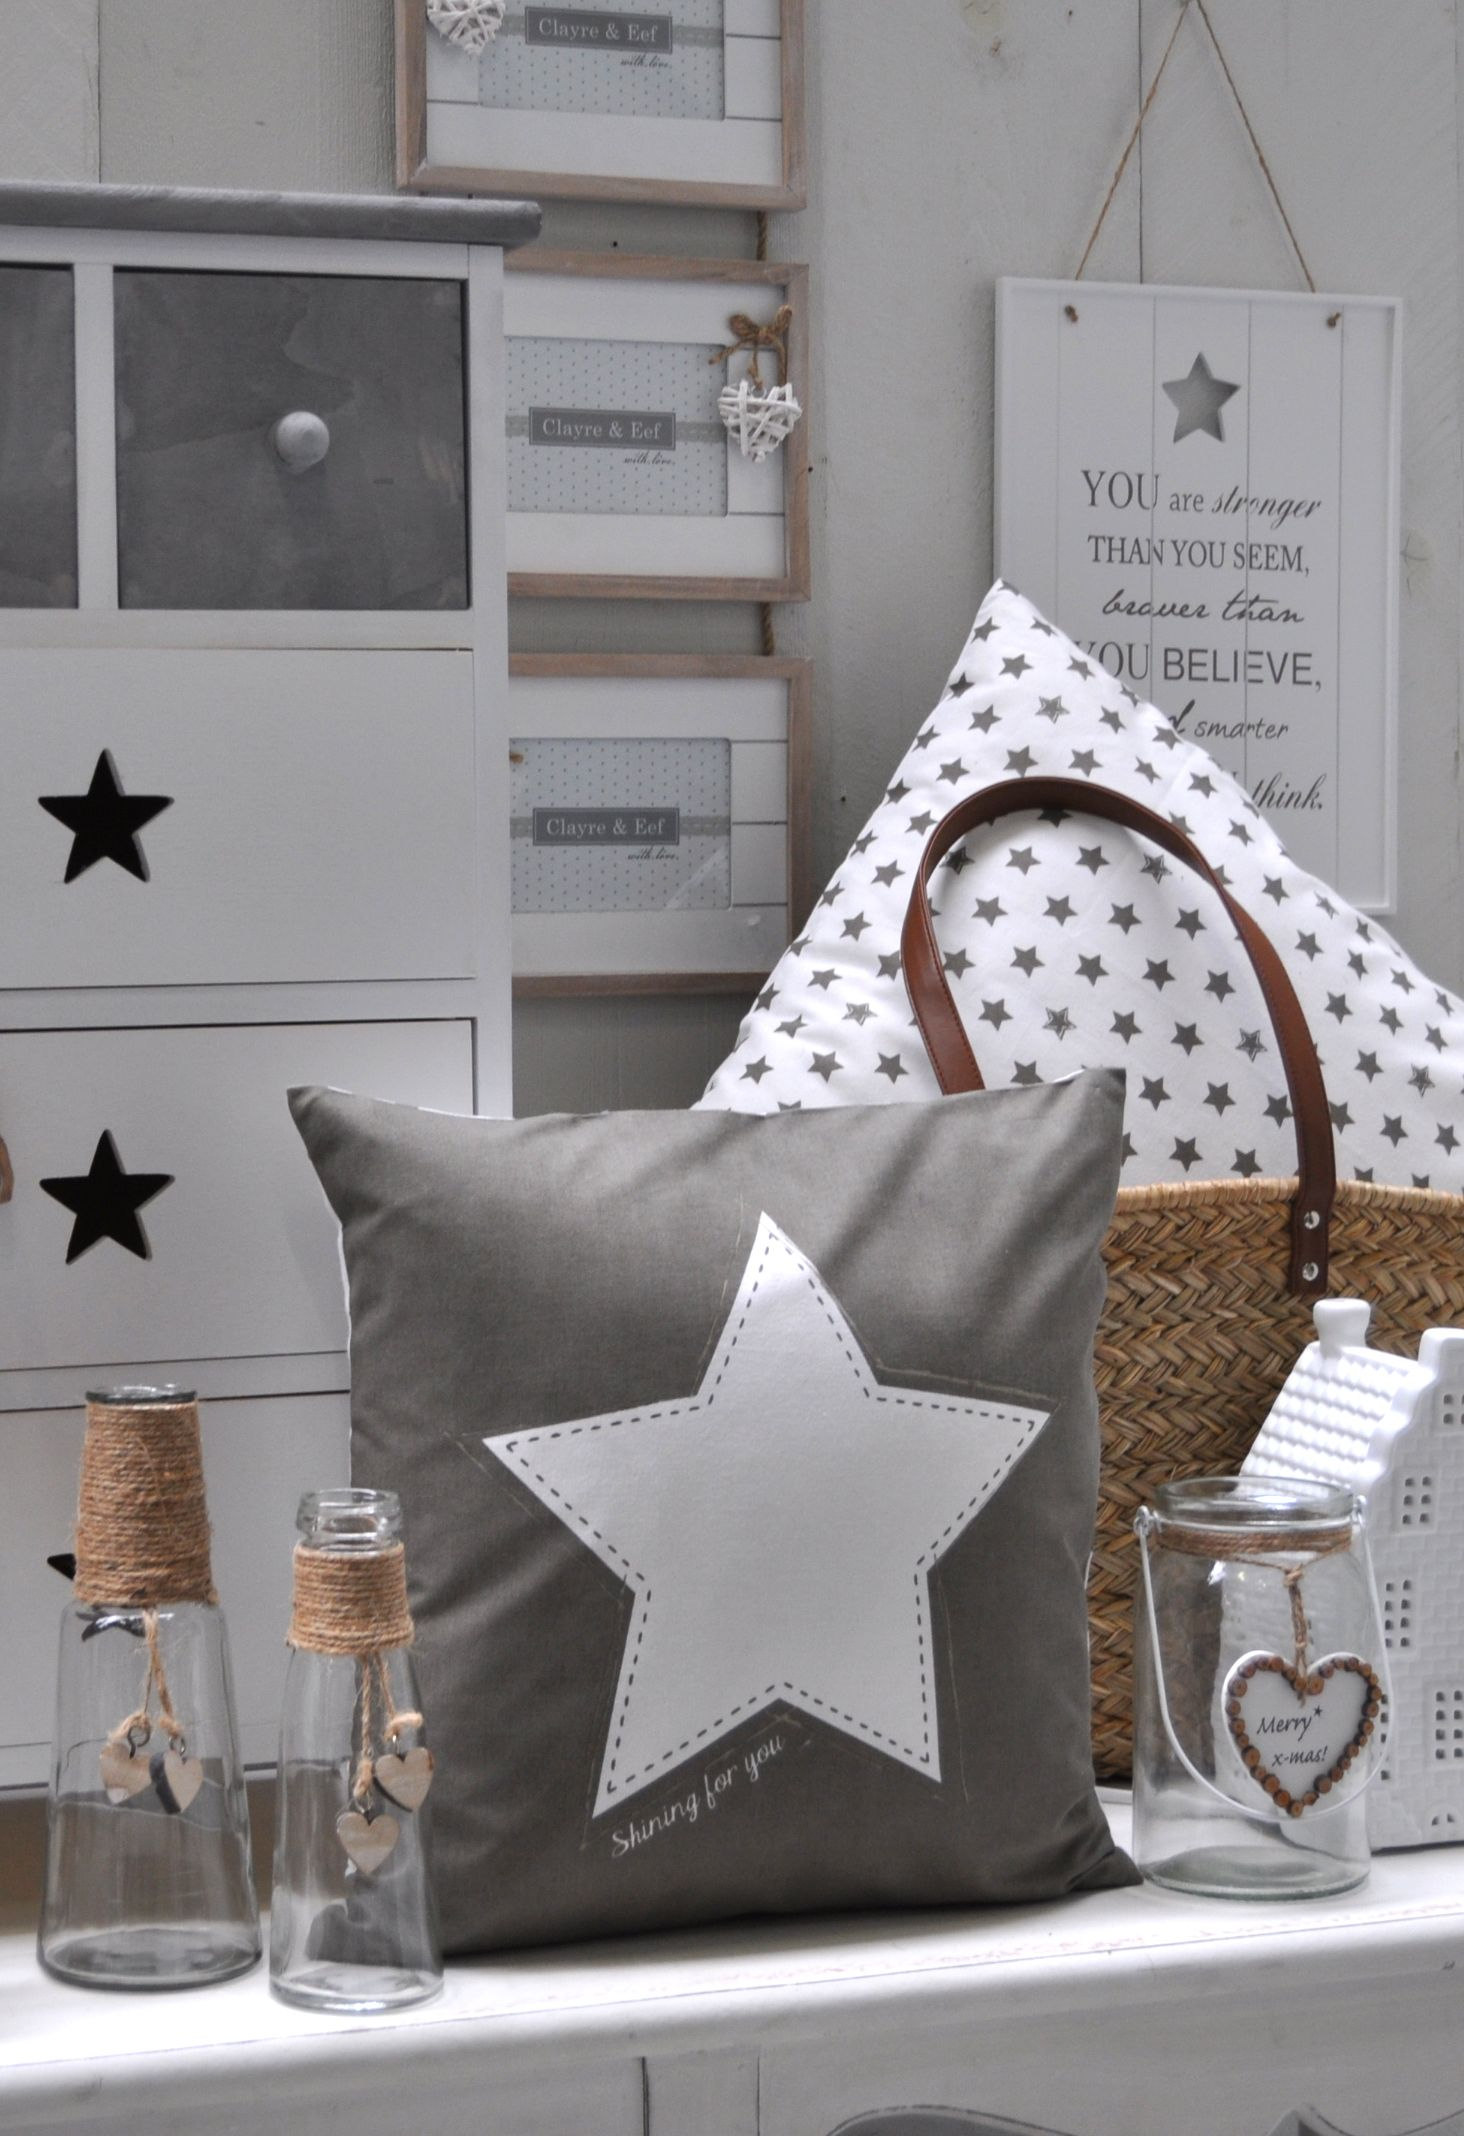 Schlafzimmer Deko Sterne Shining For You Stars Grey Romantic Interior Cushion